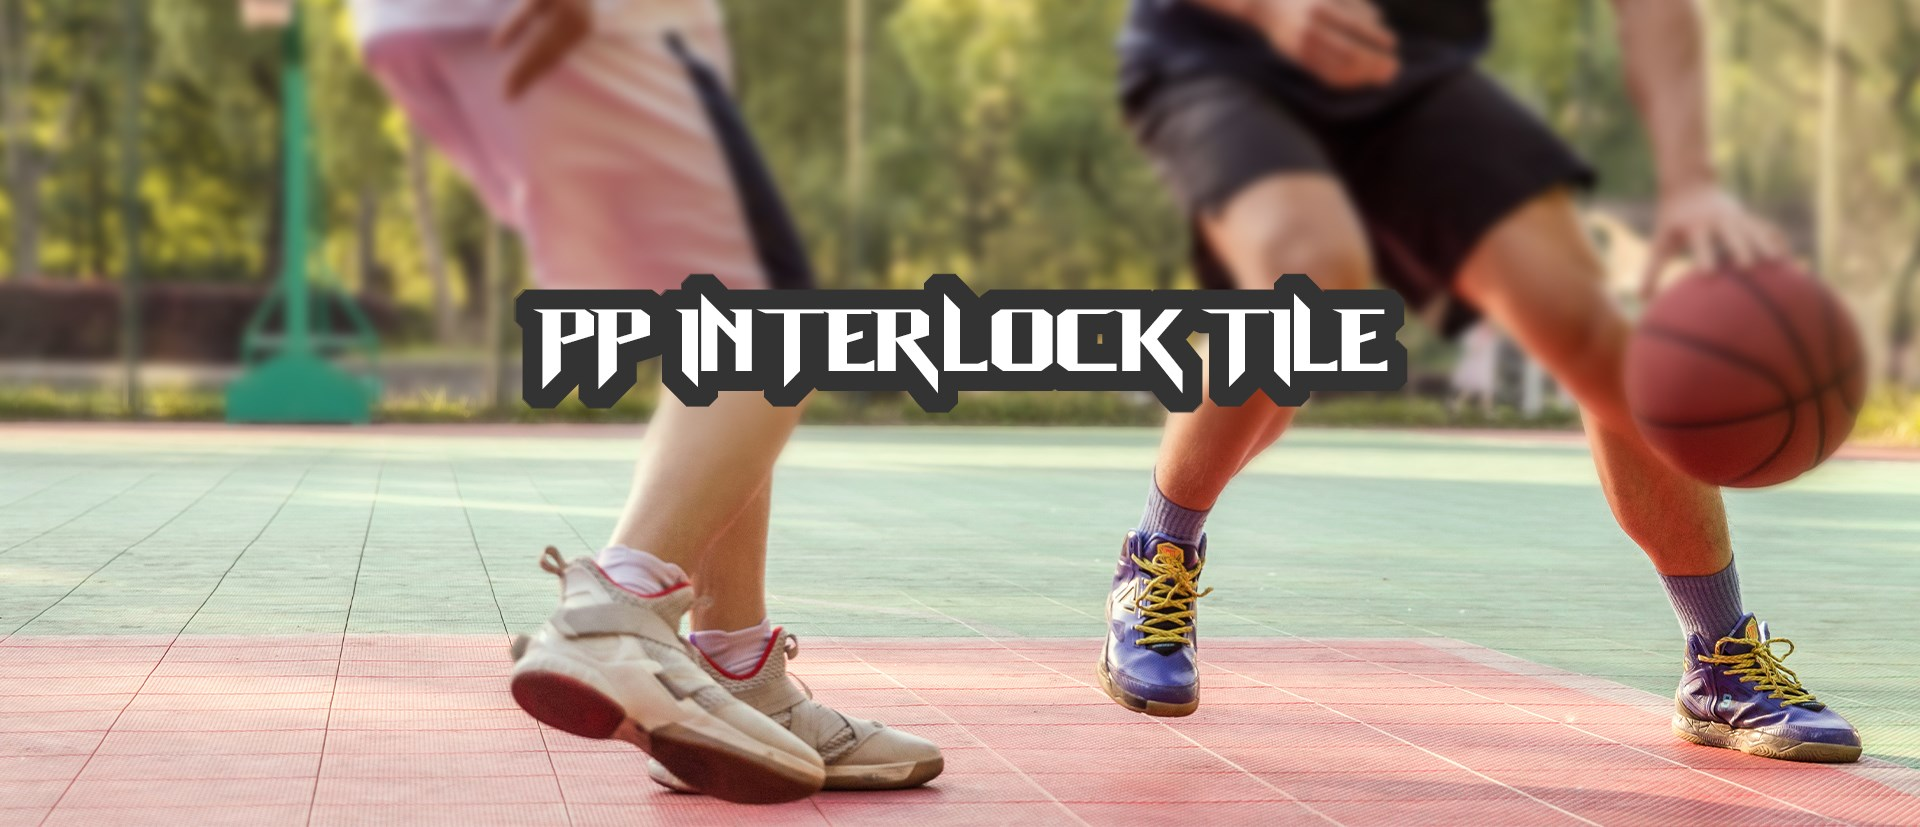 PP interlock tiles